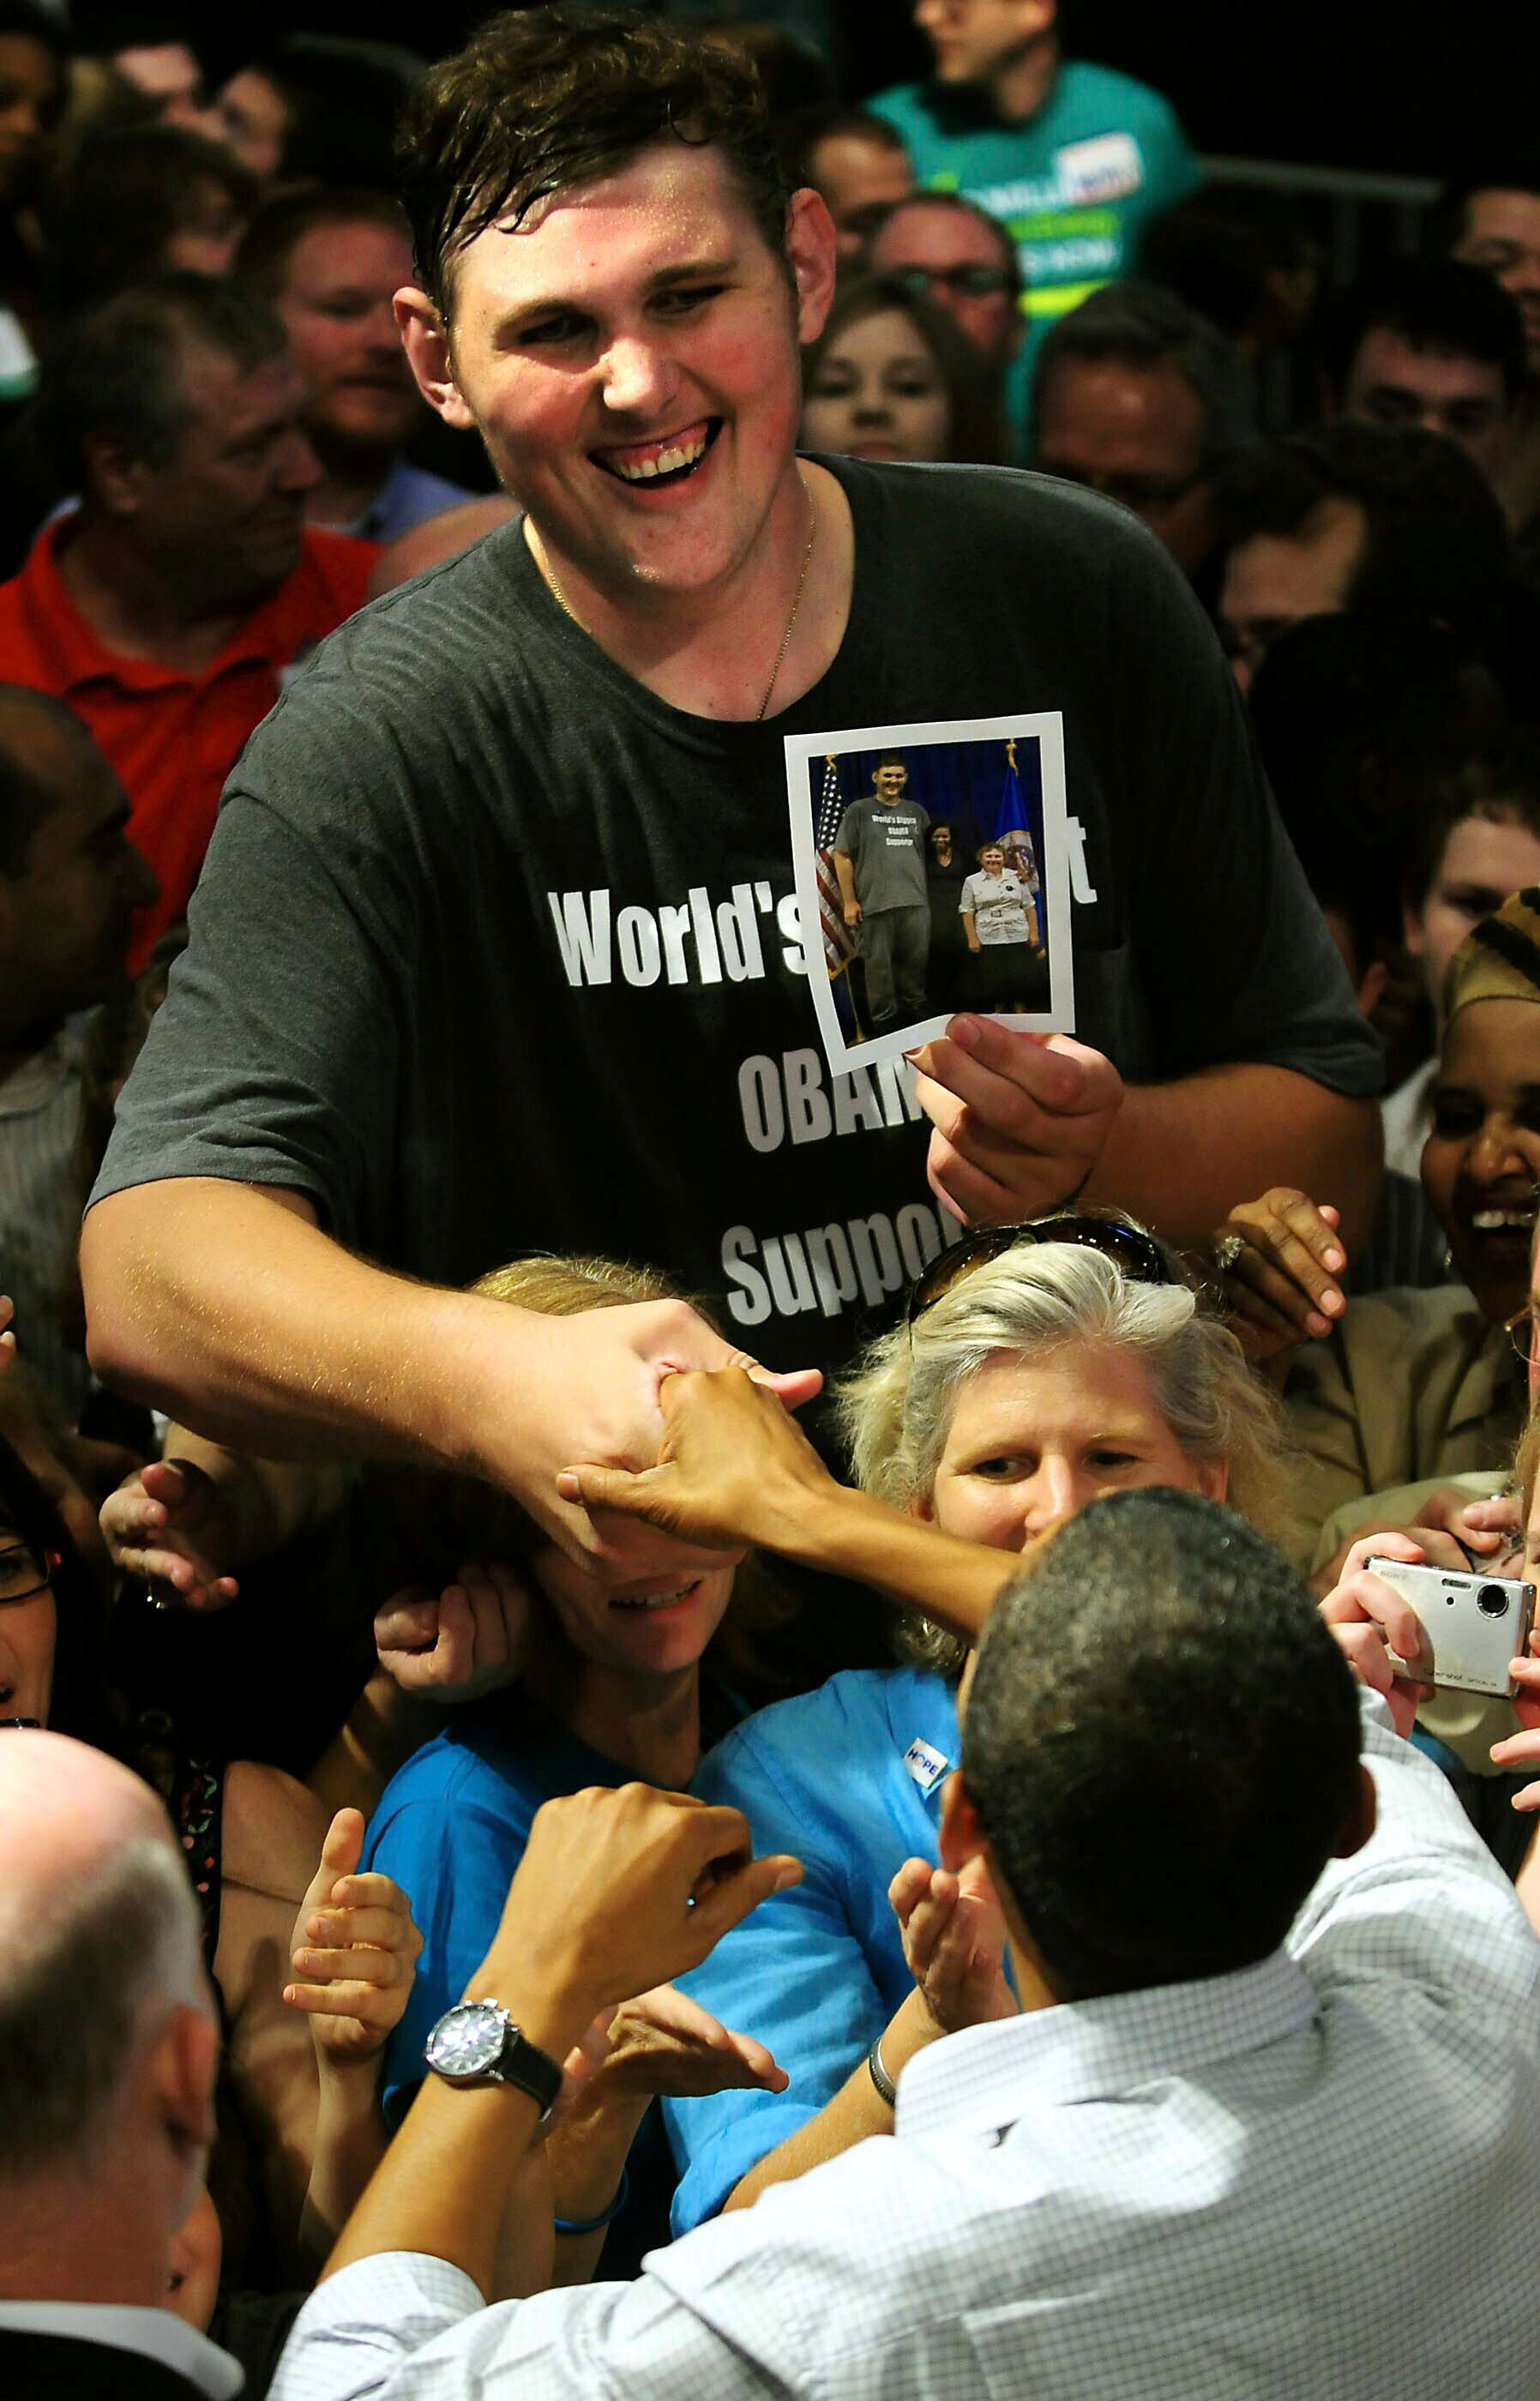 In 2009 President Barack Obama spotted Igor Vovkovinskiy at a rally crowd, and the pair shook hands.